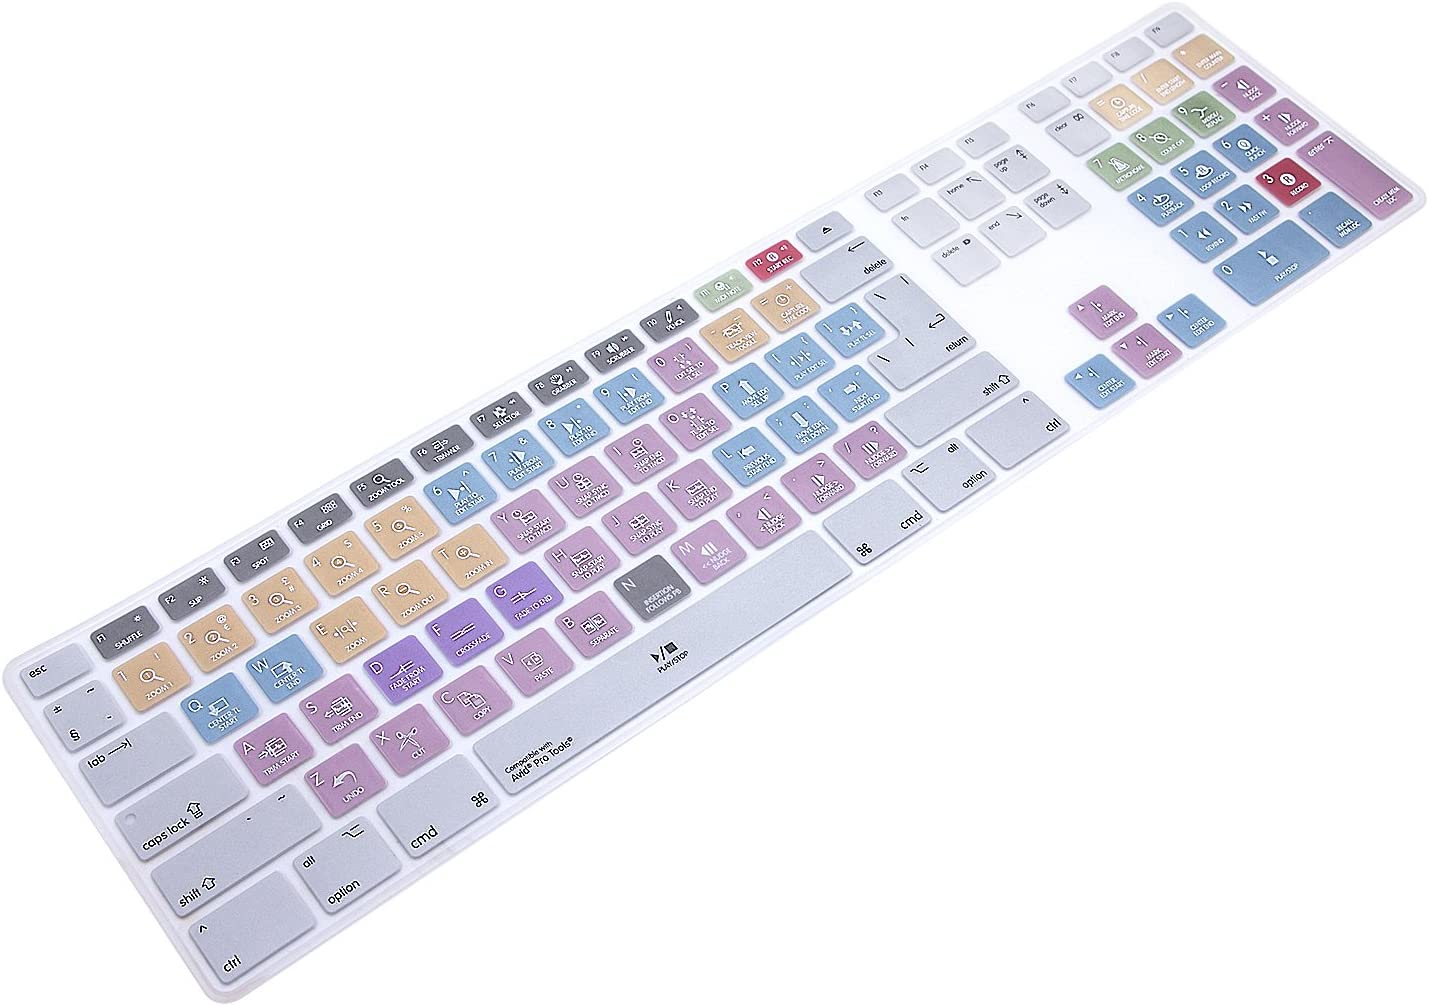 WYGCH Ultra Thin Shortcuts Extended Protective Tulsa Mall Silicone Keyboard excellence